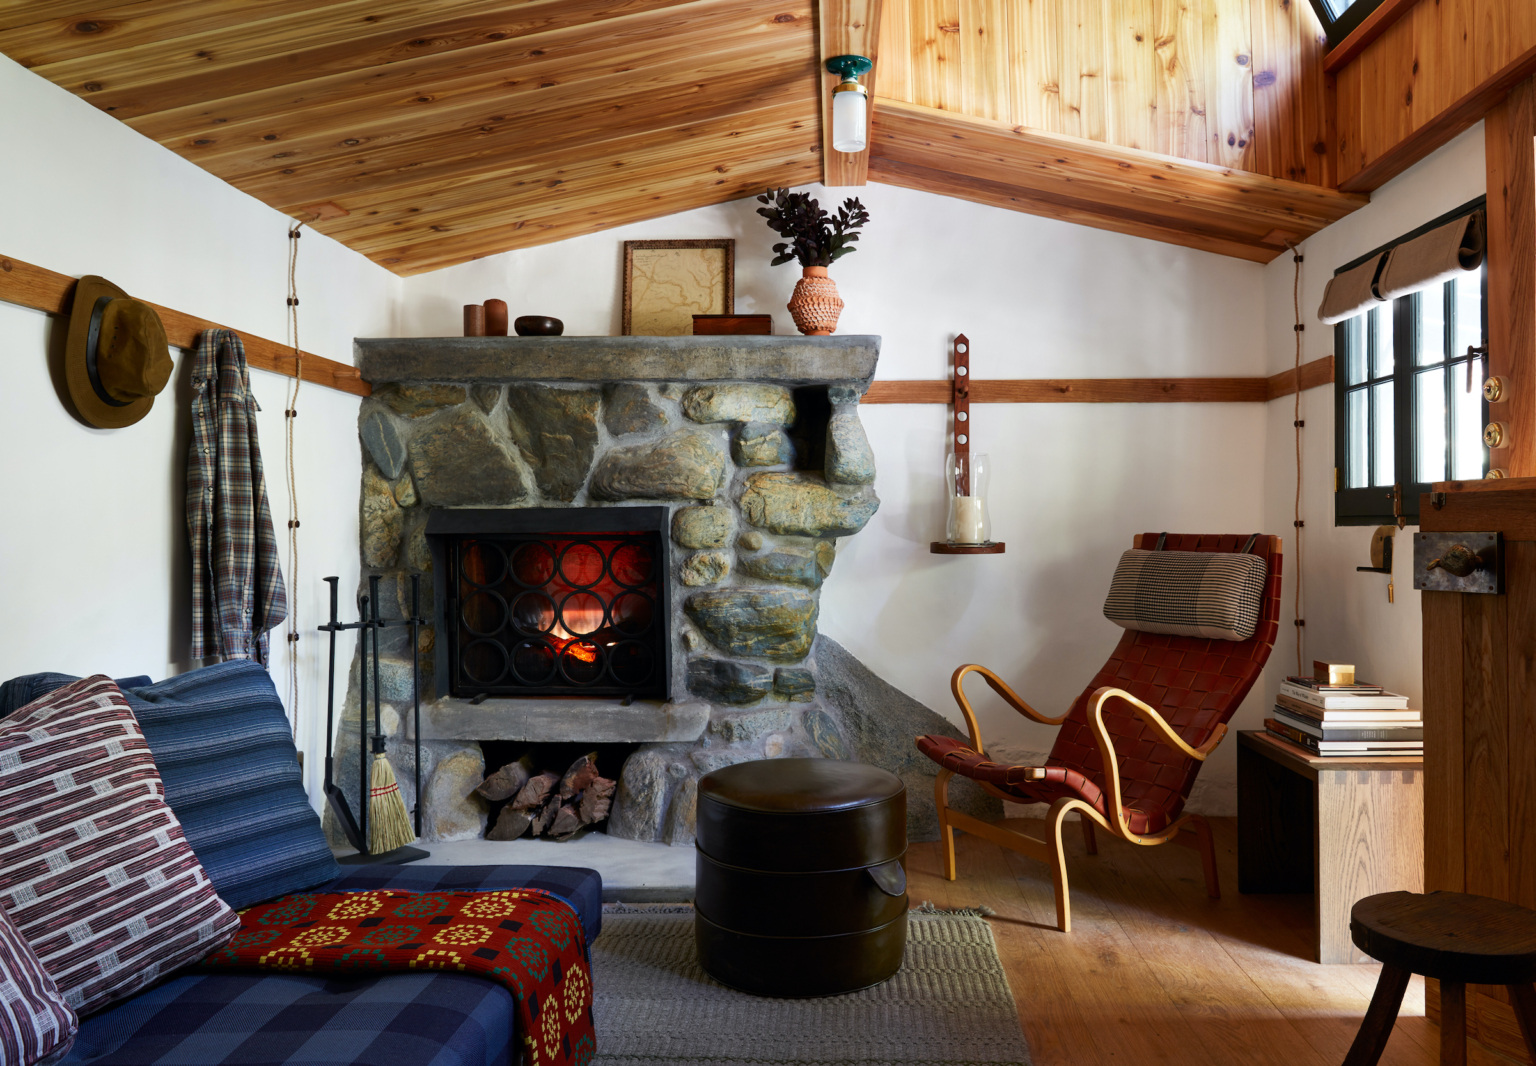 A Hollywood Director's Refined Off-the-Grid Man Cabin by Commune Design